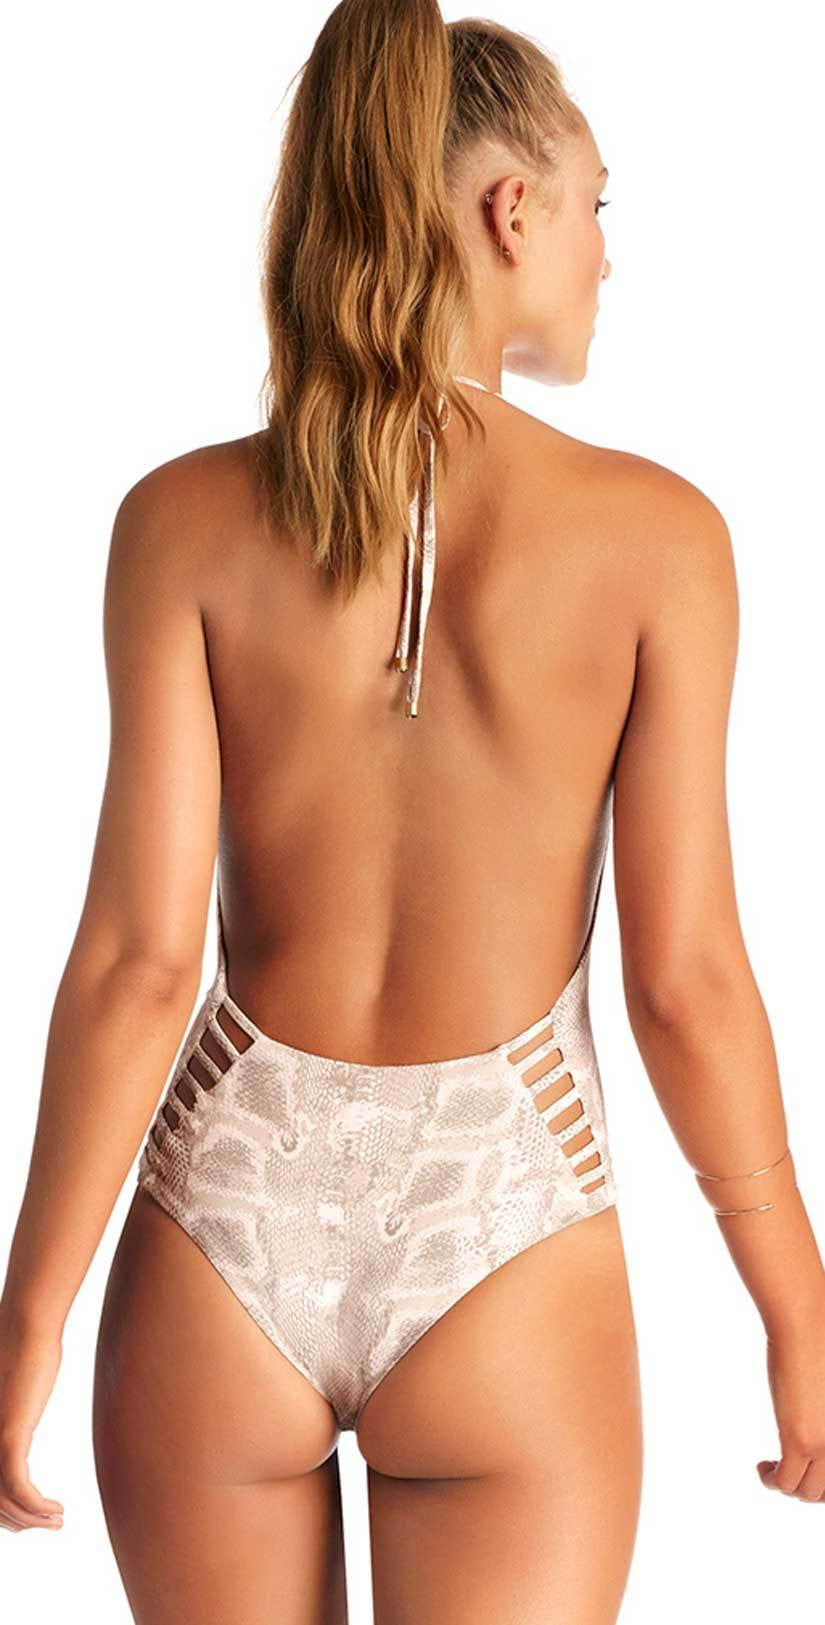 Vitamin A Bianca One Piece Bodysuit in Barefoot in Belize 73M BIB Back View